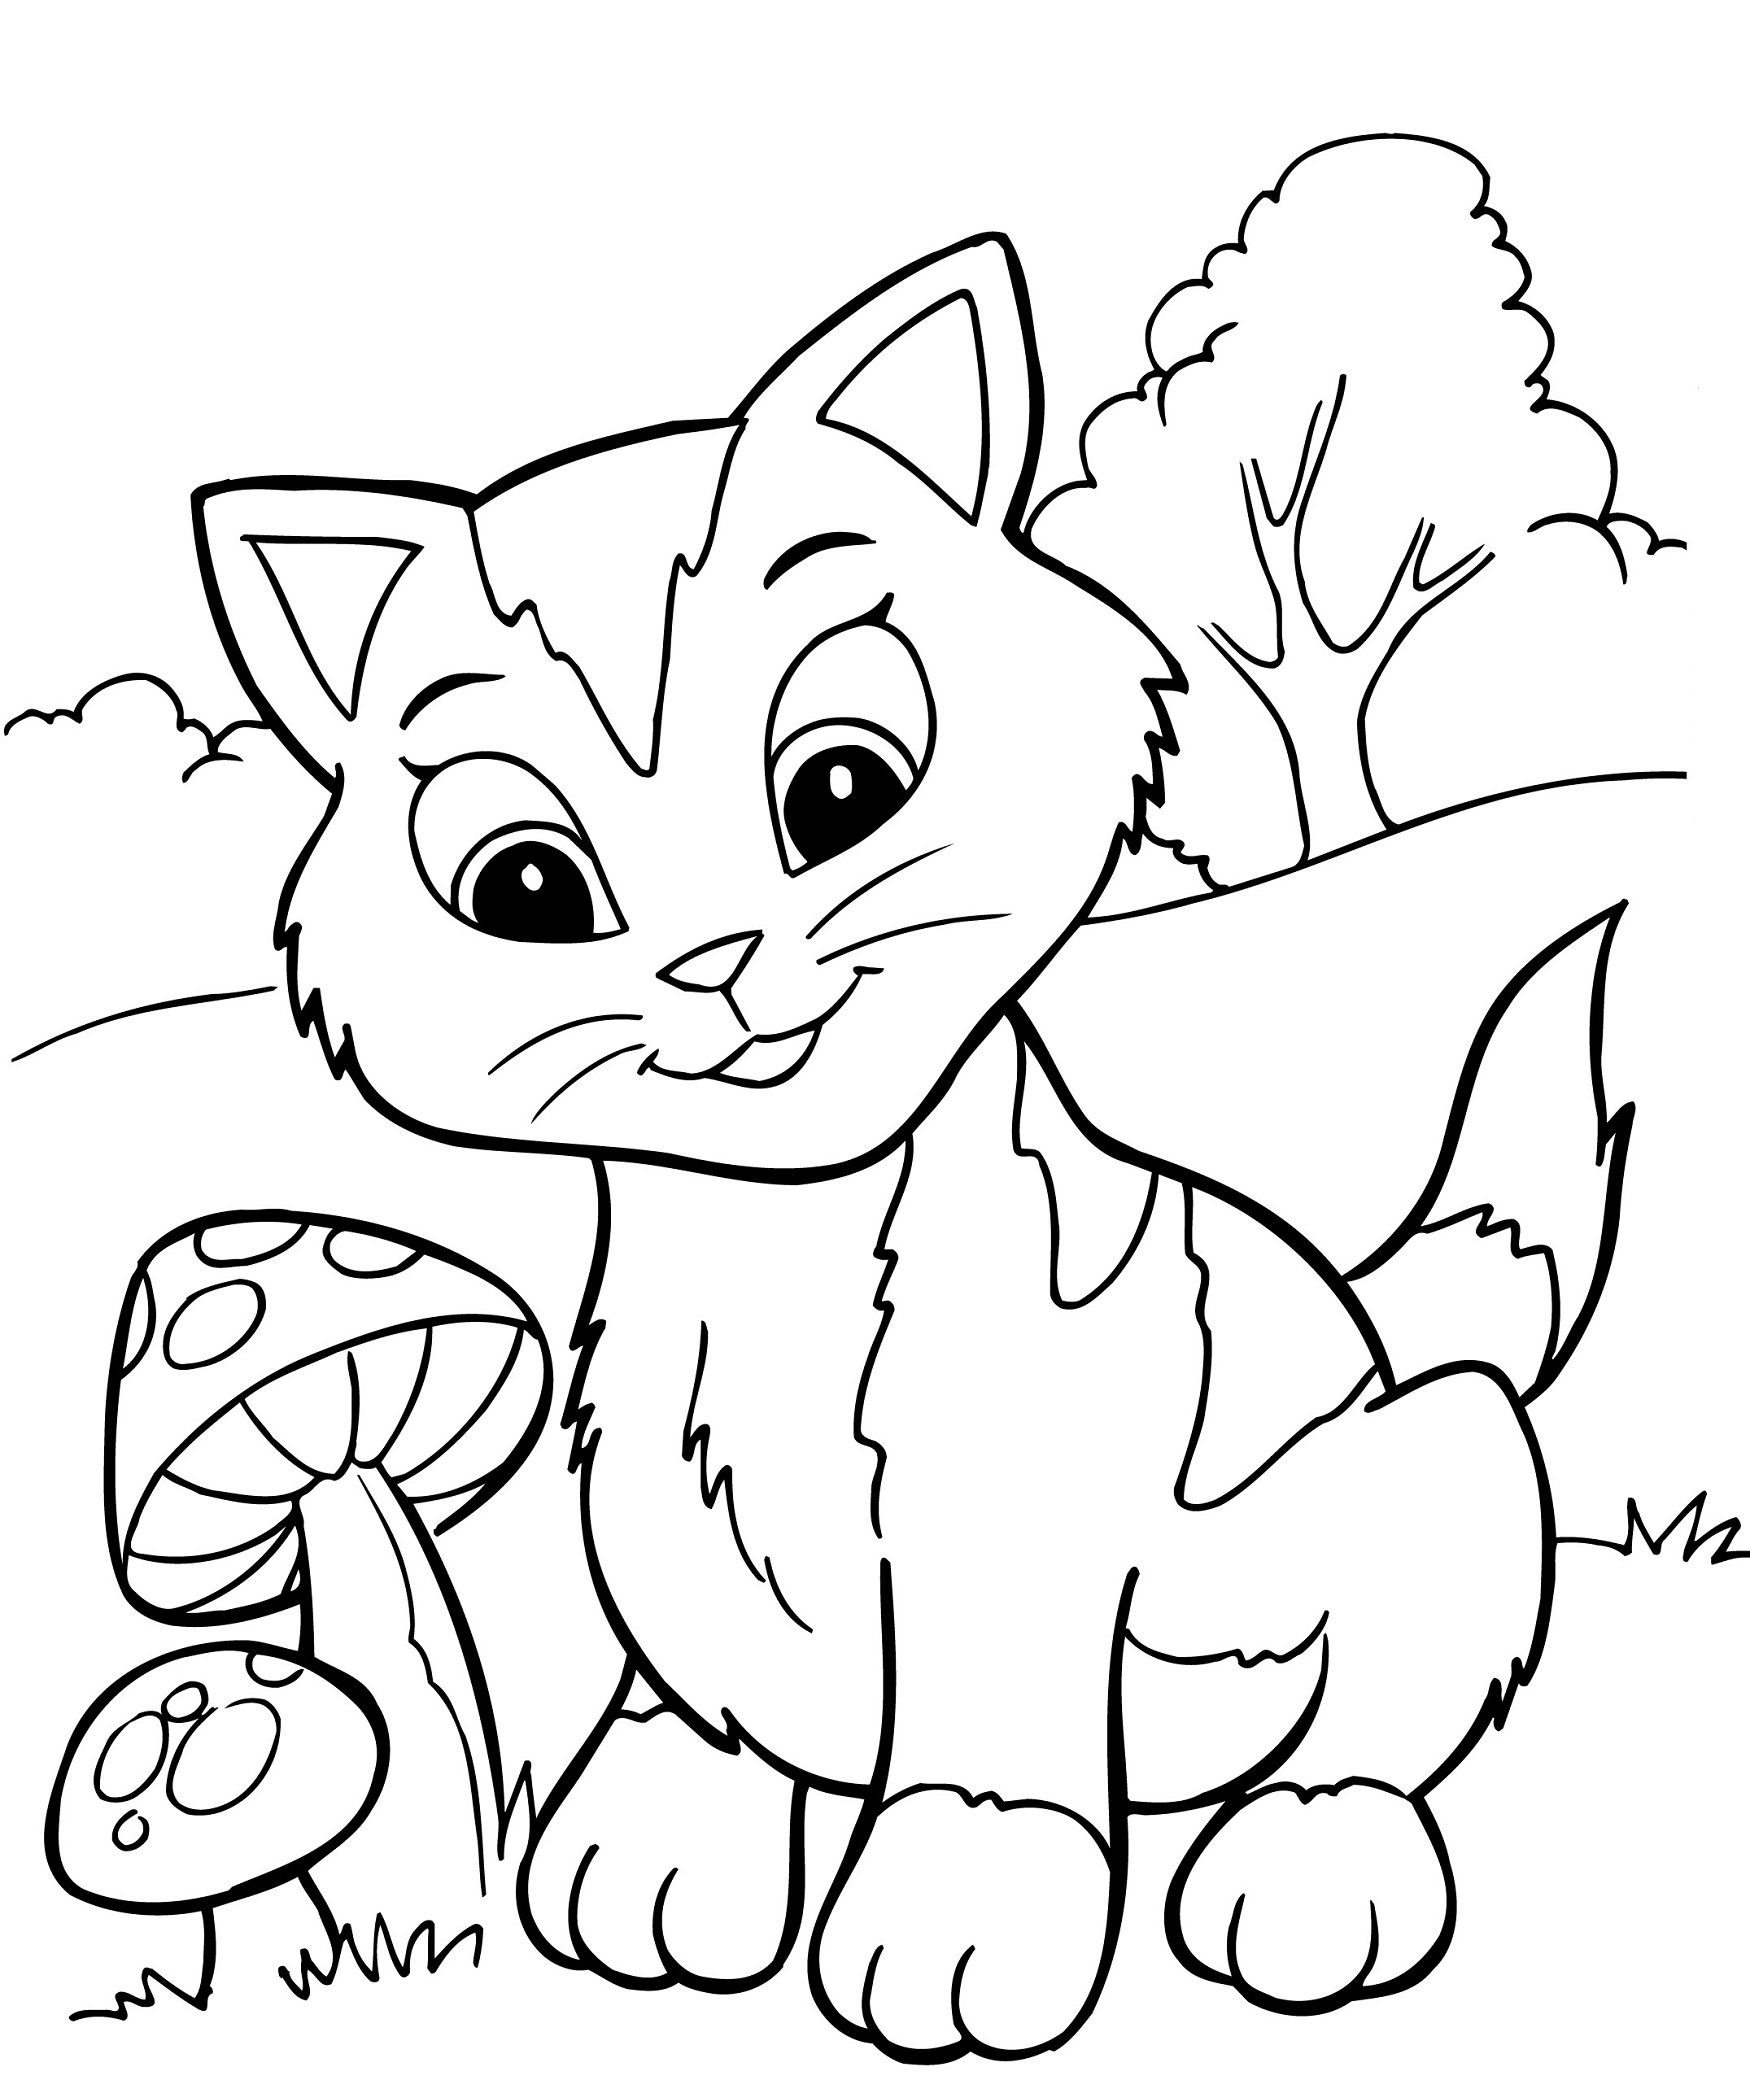 Kitten Coloring Sheets